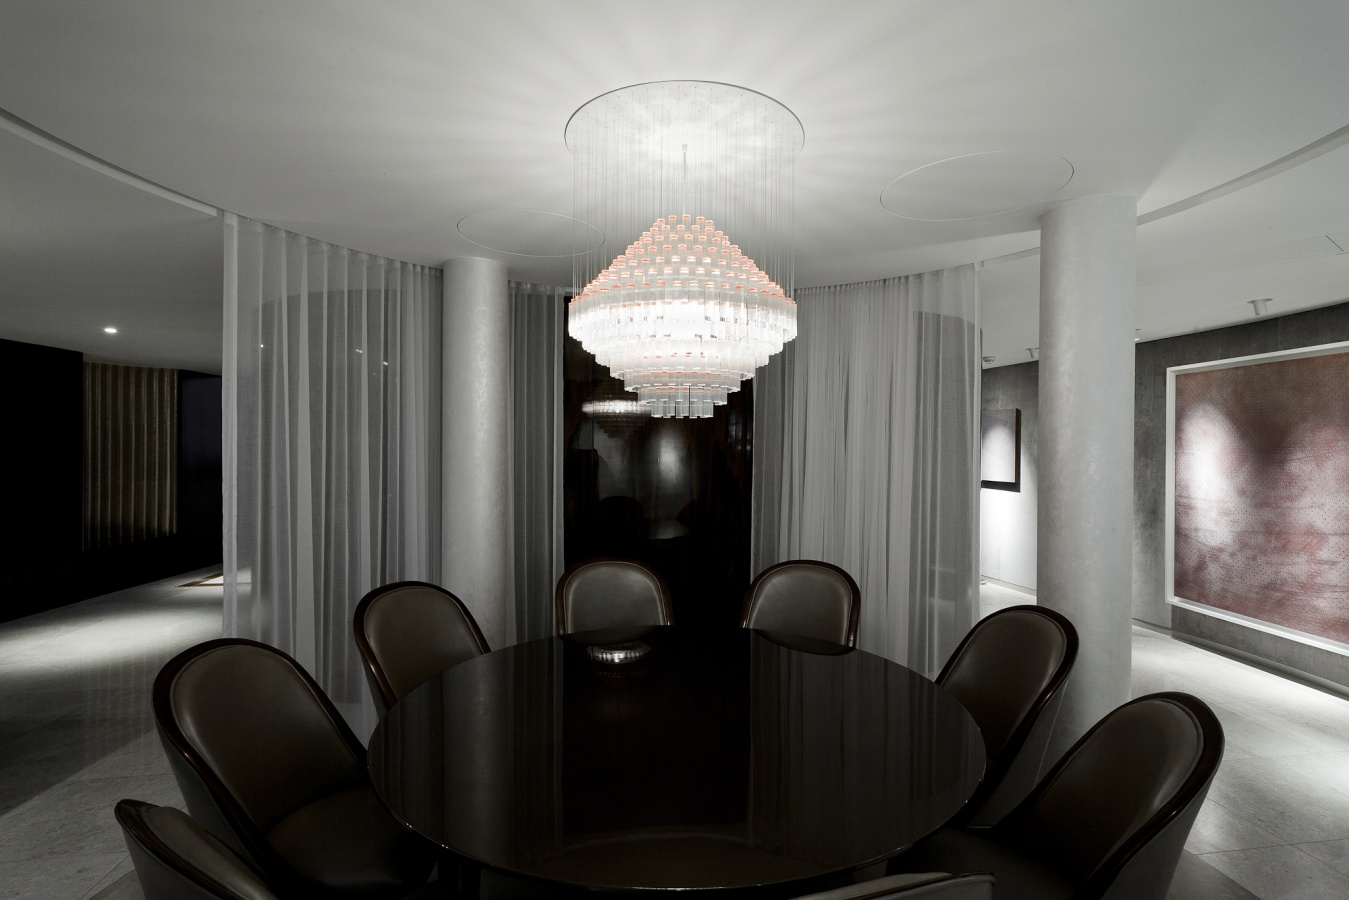 George Singer Modern Chandeliers And Lighting Installations Deco Chandelier Photo 2 Www Georgesinger Co Uk